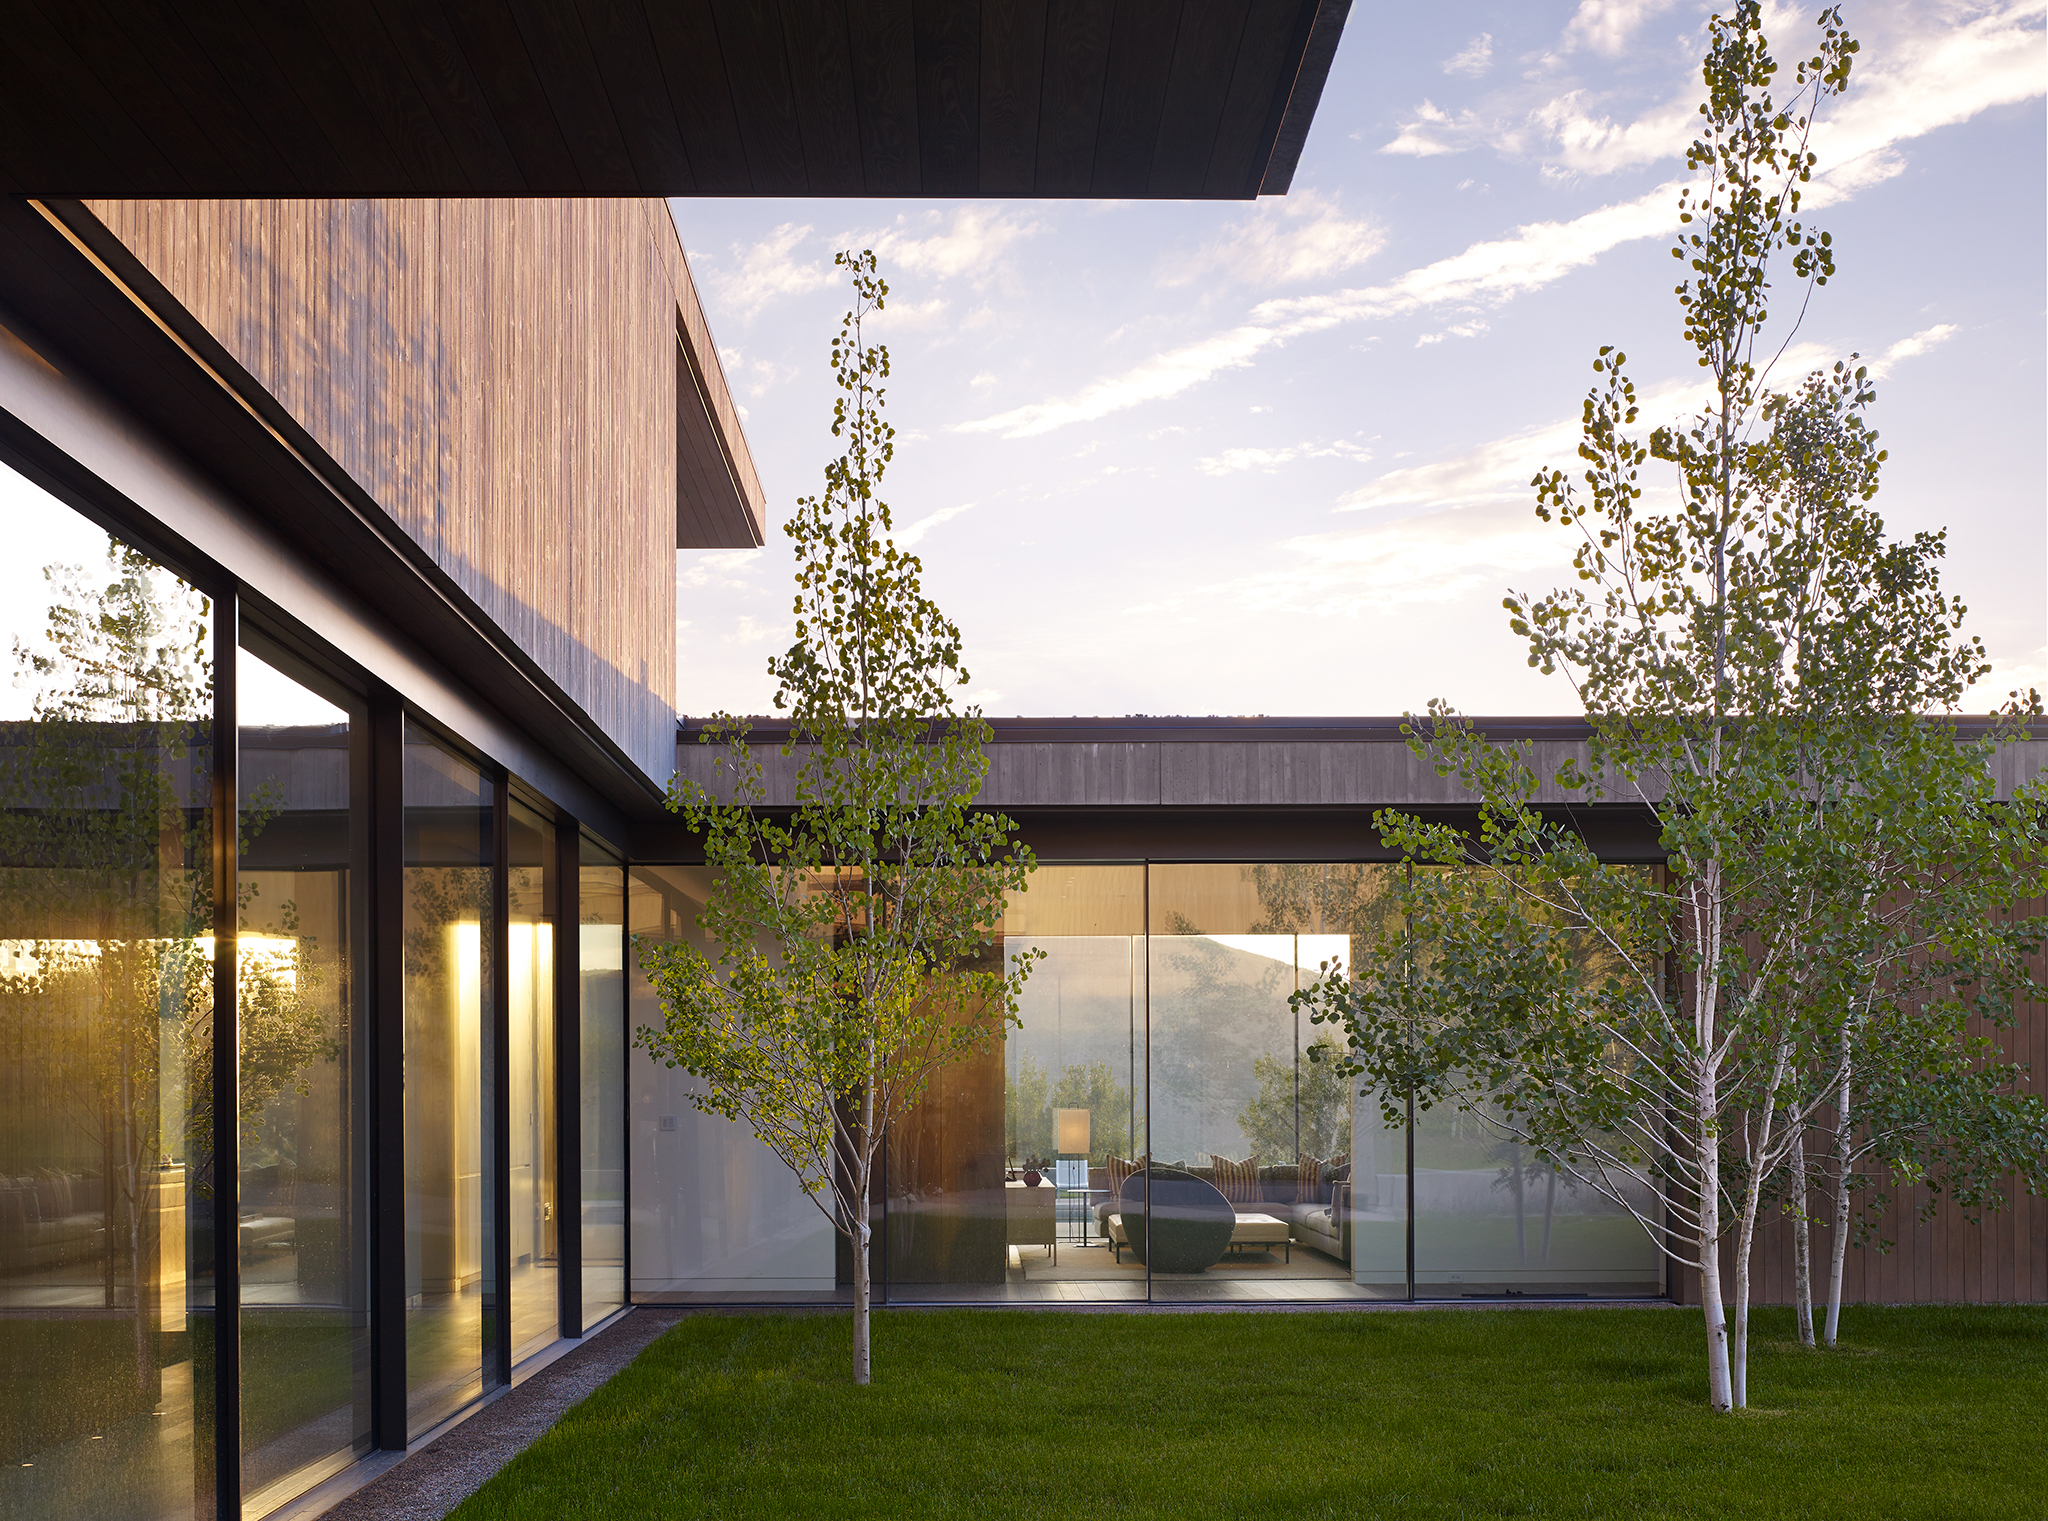 Colorado Residence by Robbins Architecture - American Design & Architect - Image 5